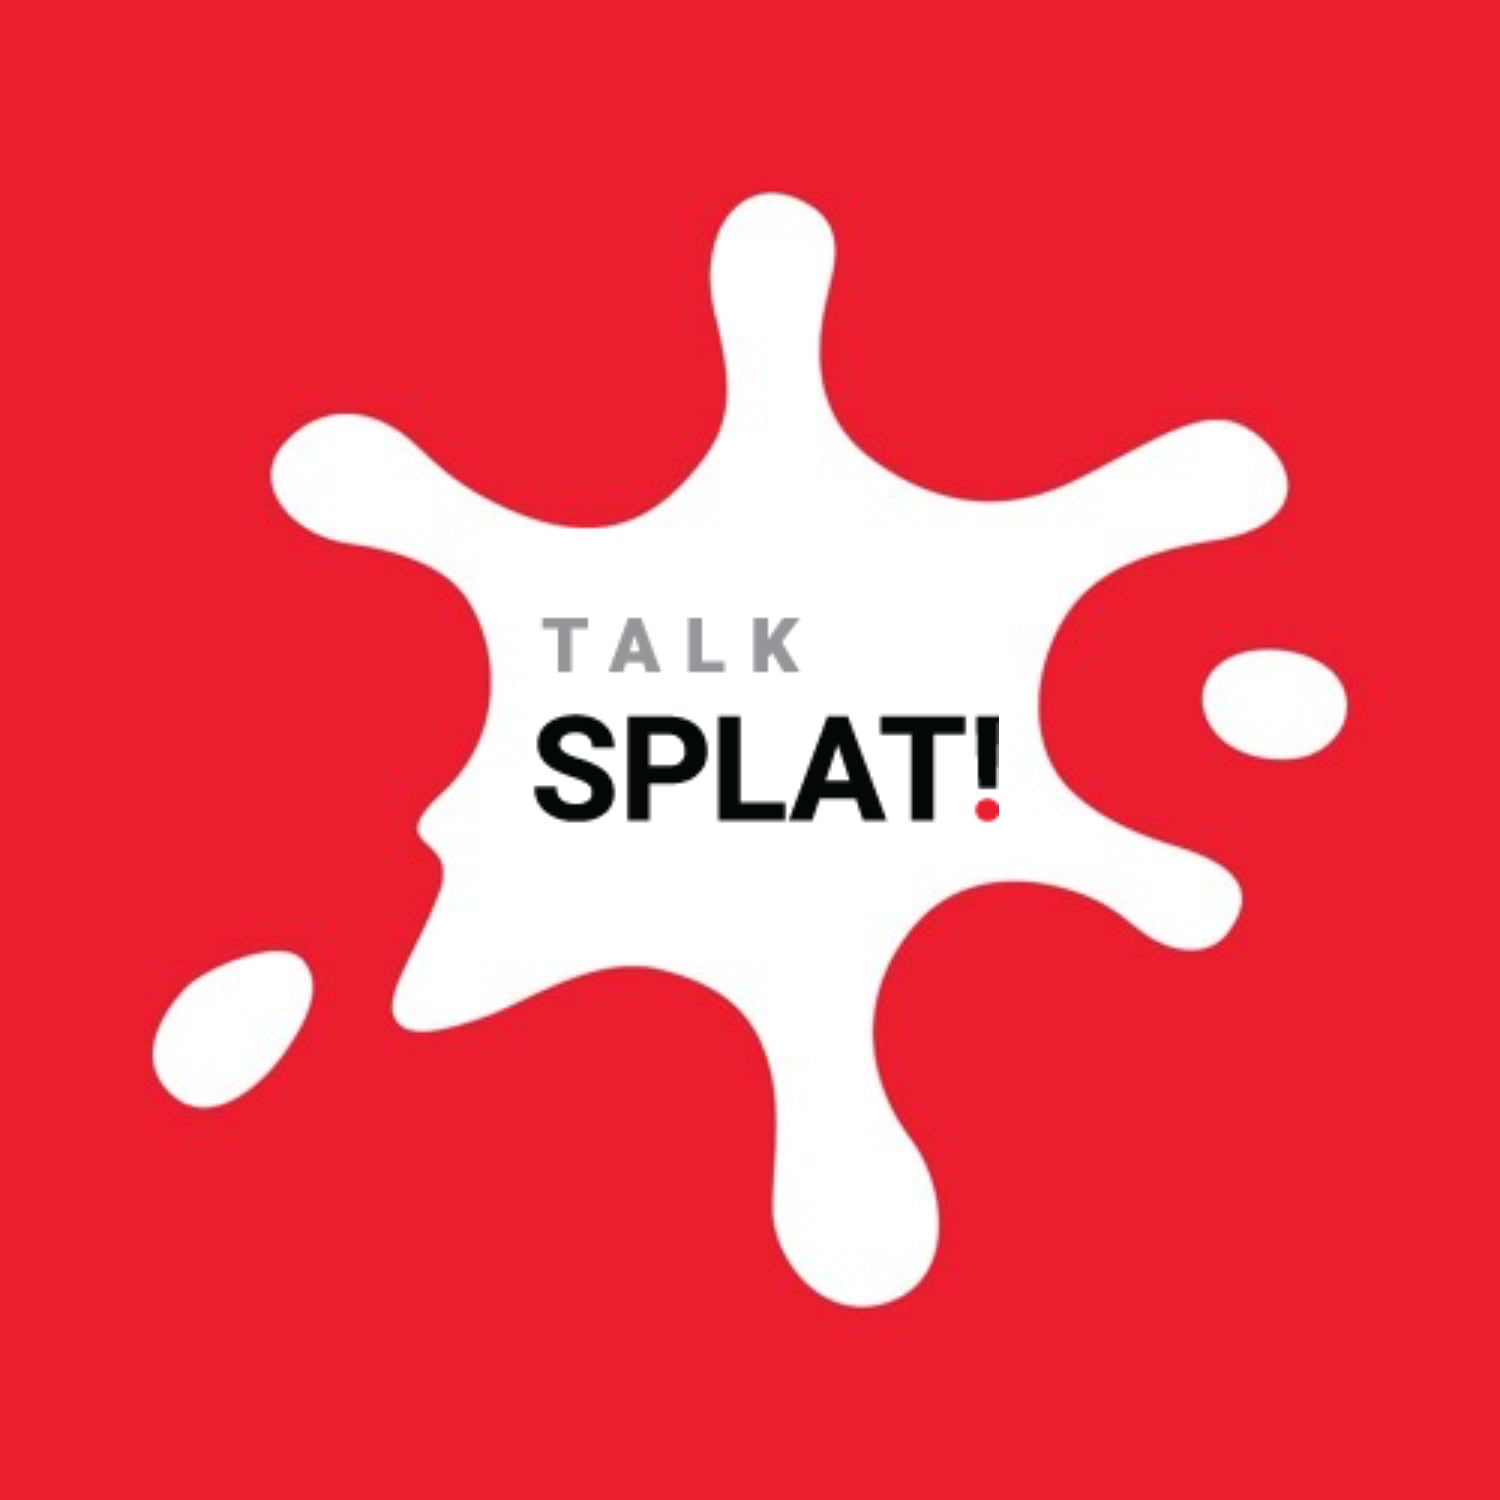 splat talk imaging library